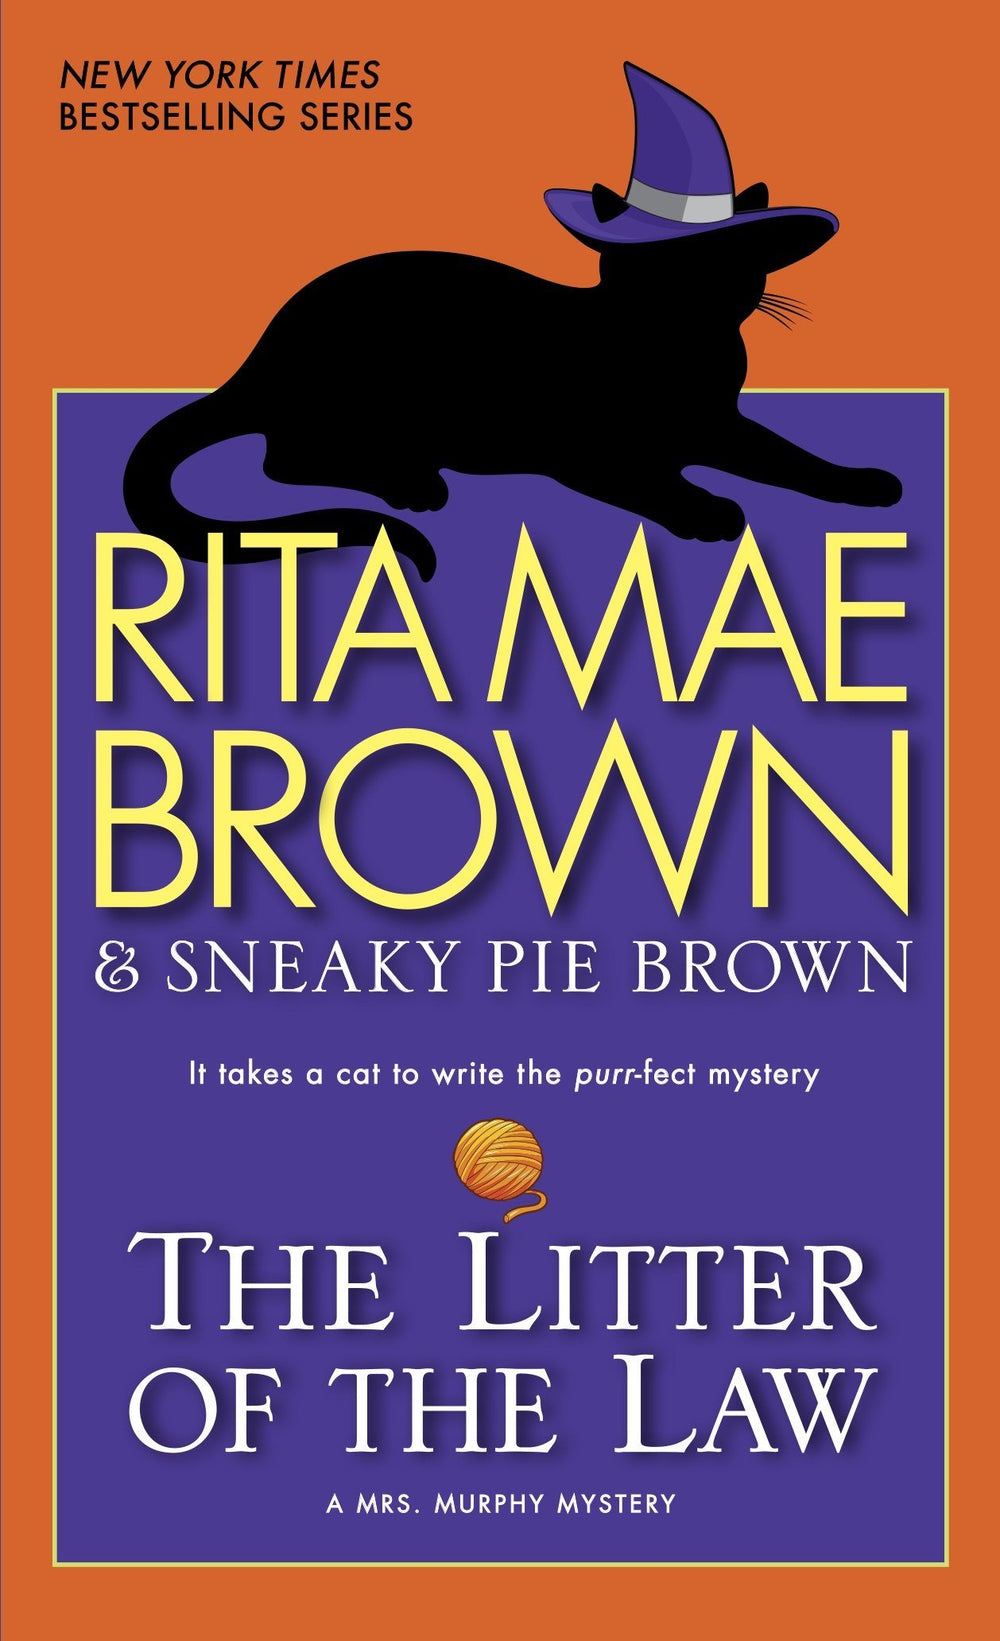 The Litter of the Law (Mrs. Murphy Mystery #22) by Rita Mae Brown